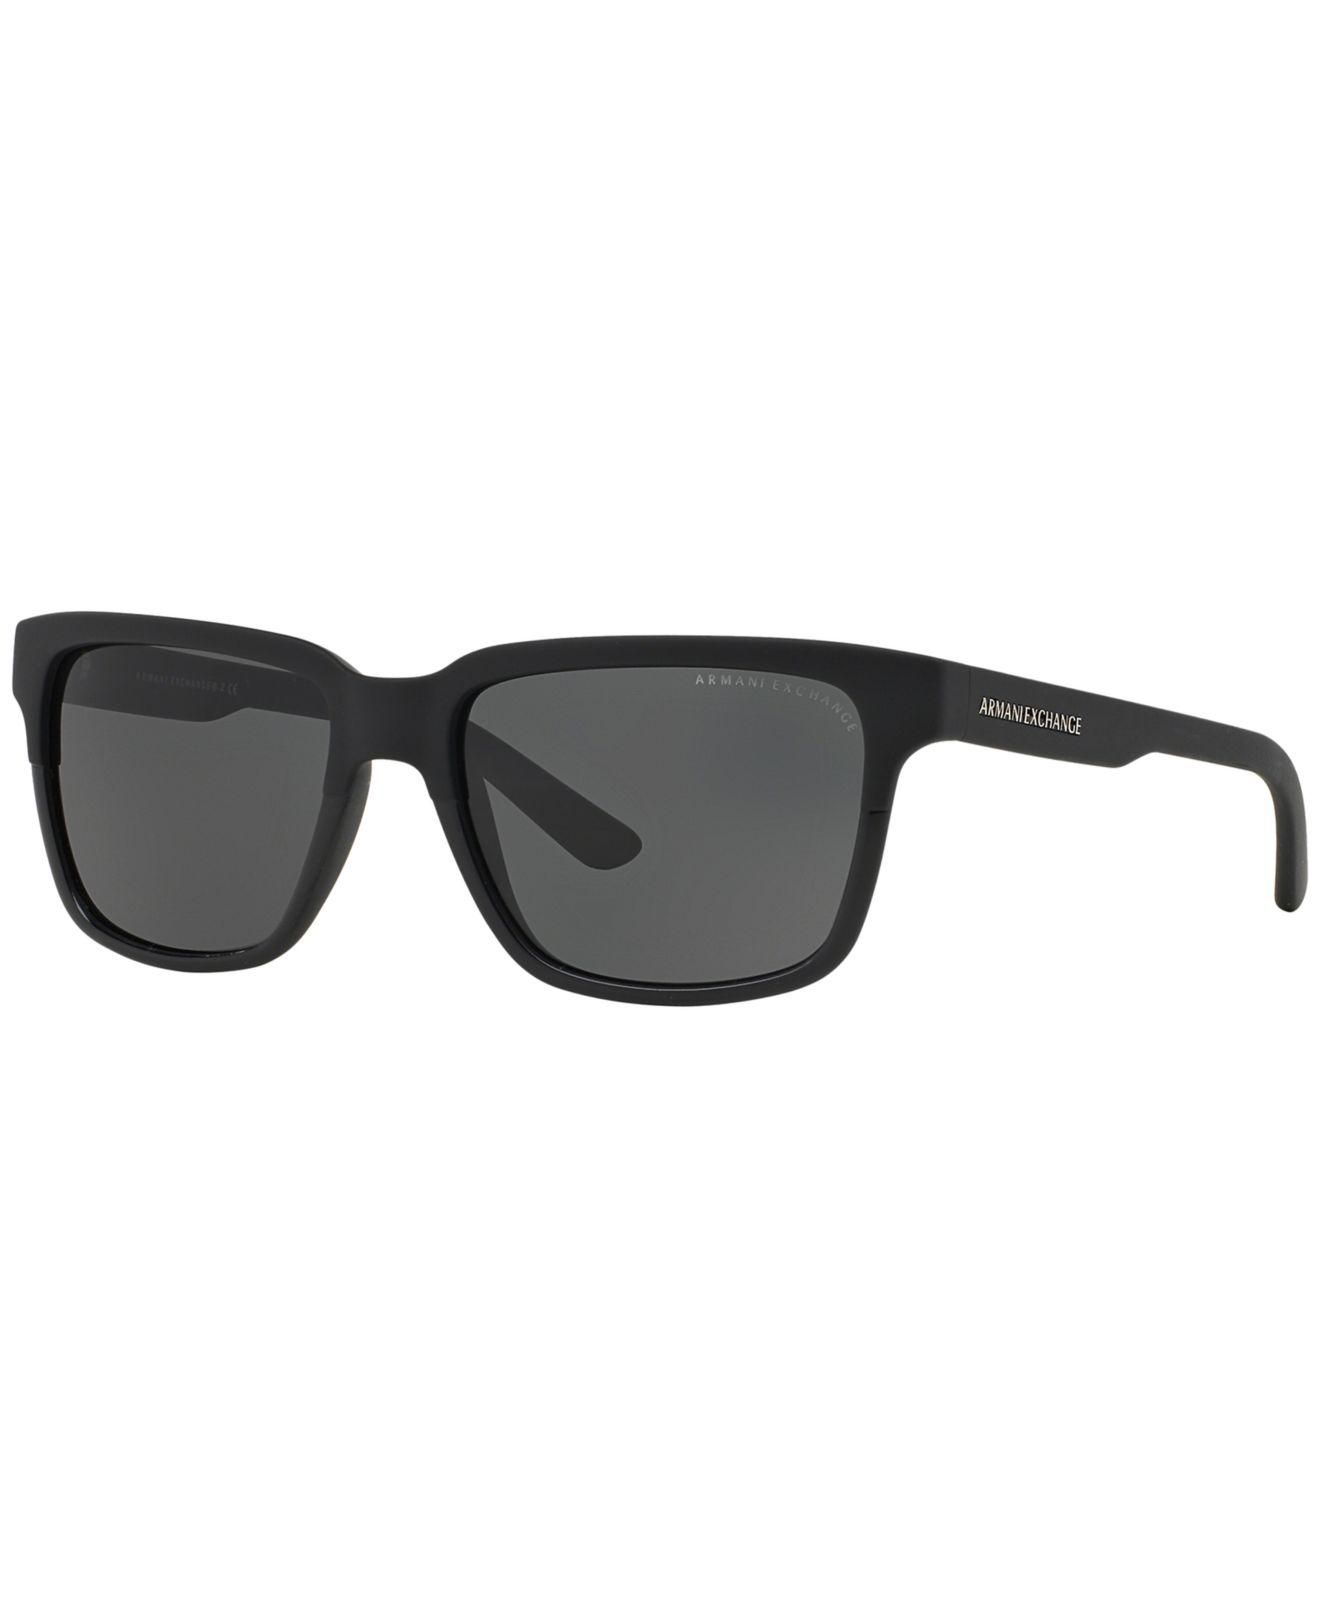 e93579fd687 Lyst - Armani Exchange Ax Sunglasses